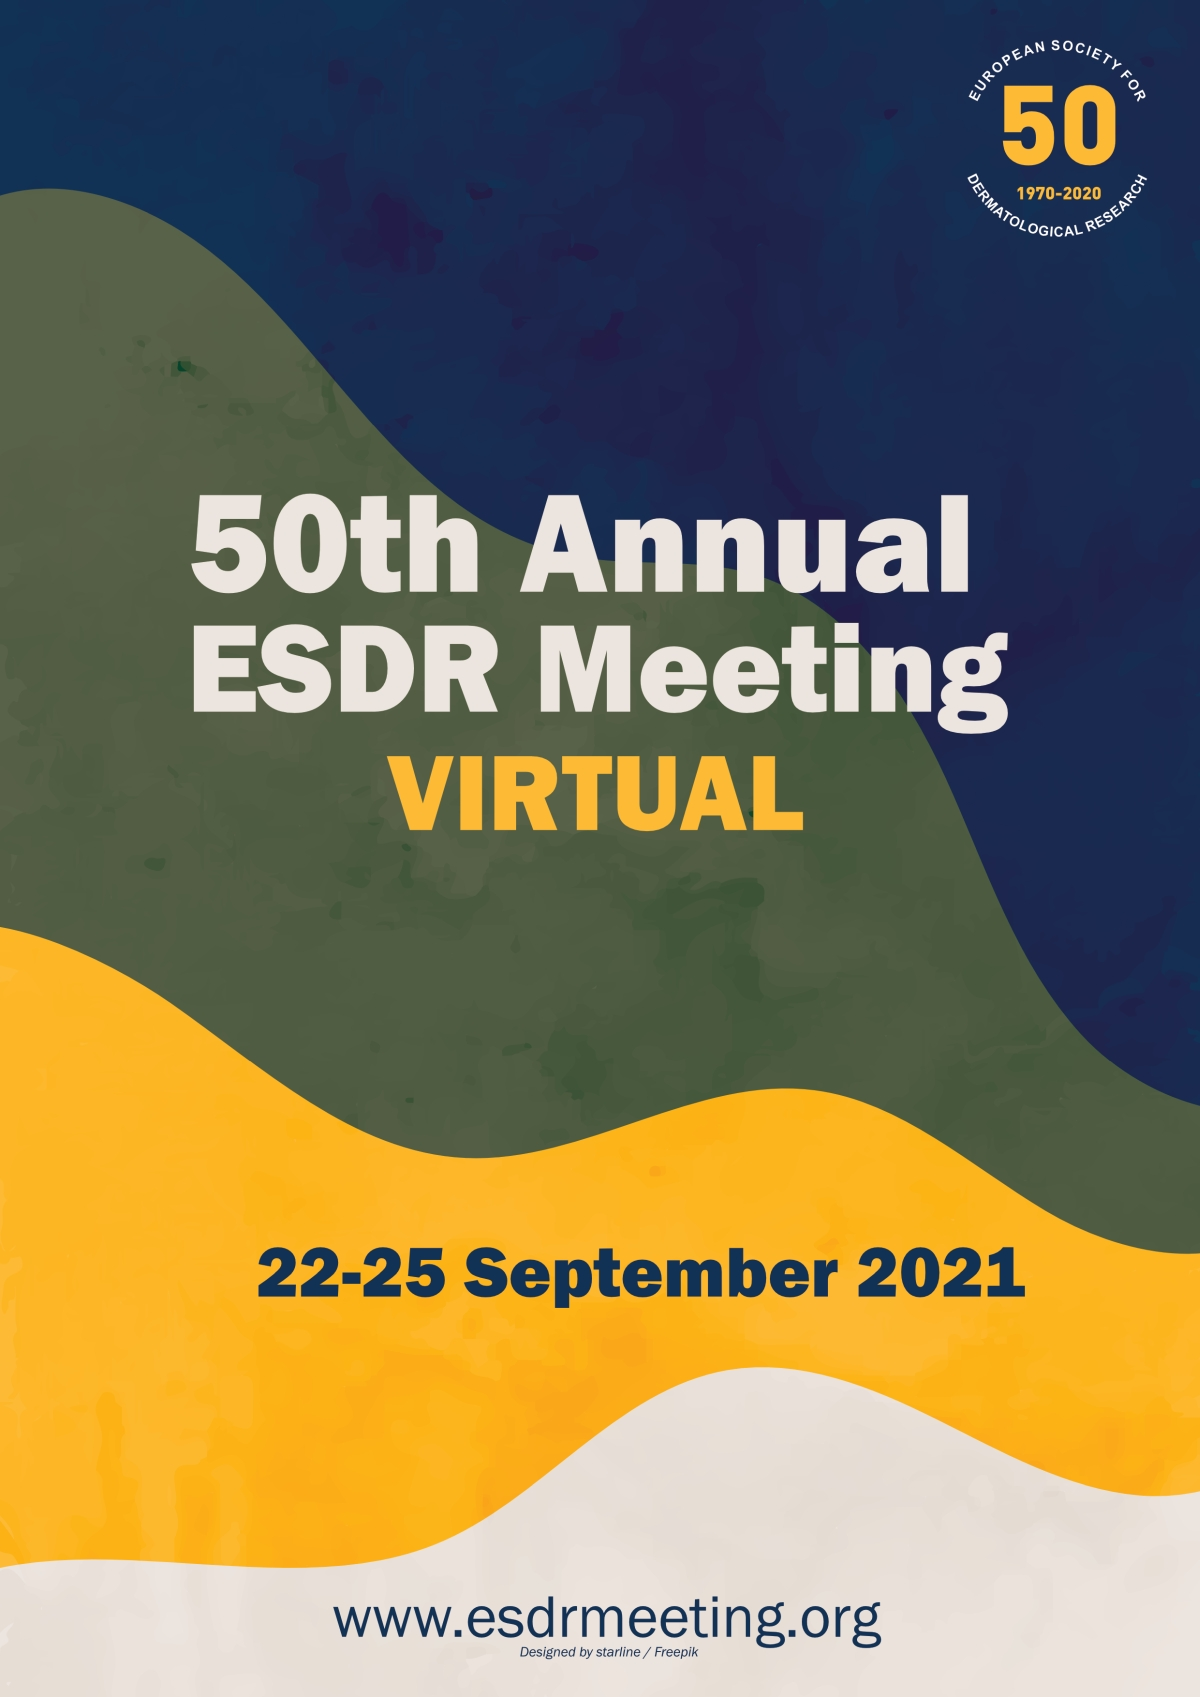 50TH ANNUAL ESDR MEETING 2021